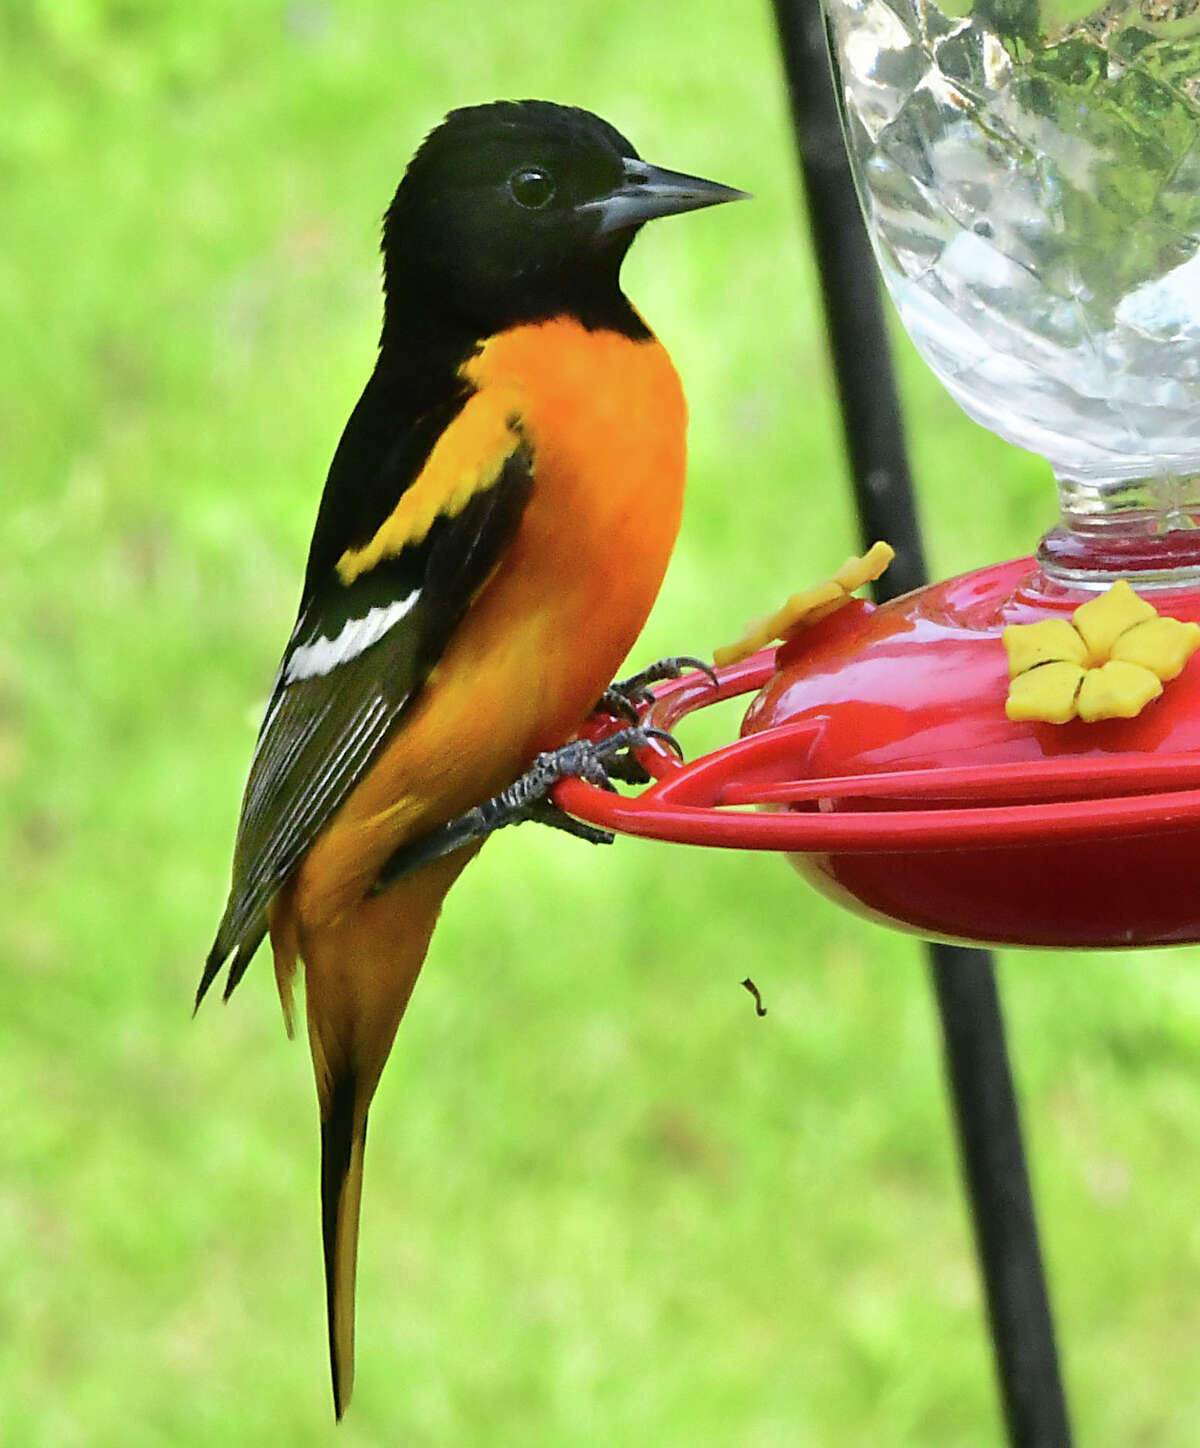 A Baltimore oriole is seen on a hummingbird feeder in a yard on Monday, May 25, 2020 in Albany, N.Y. (Lori Van Buren/Times Union)